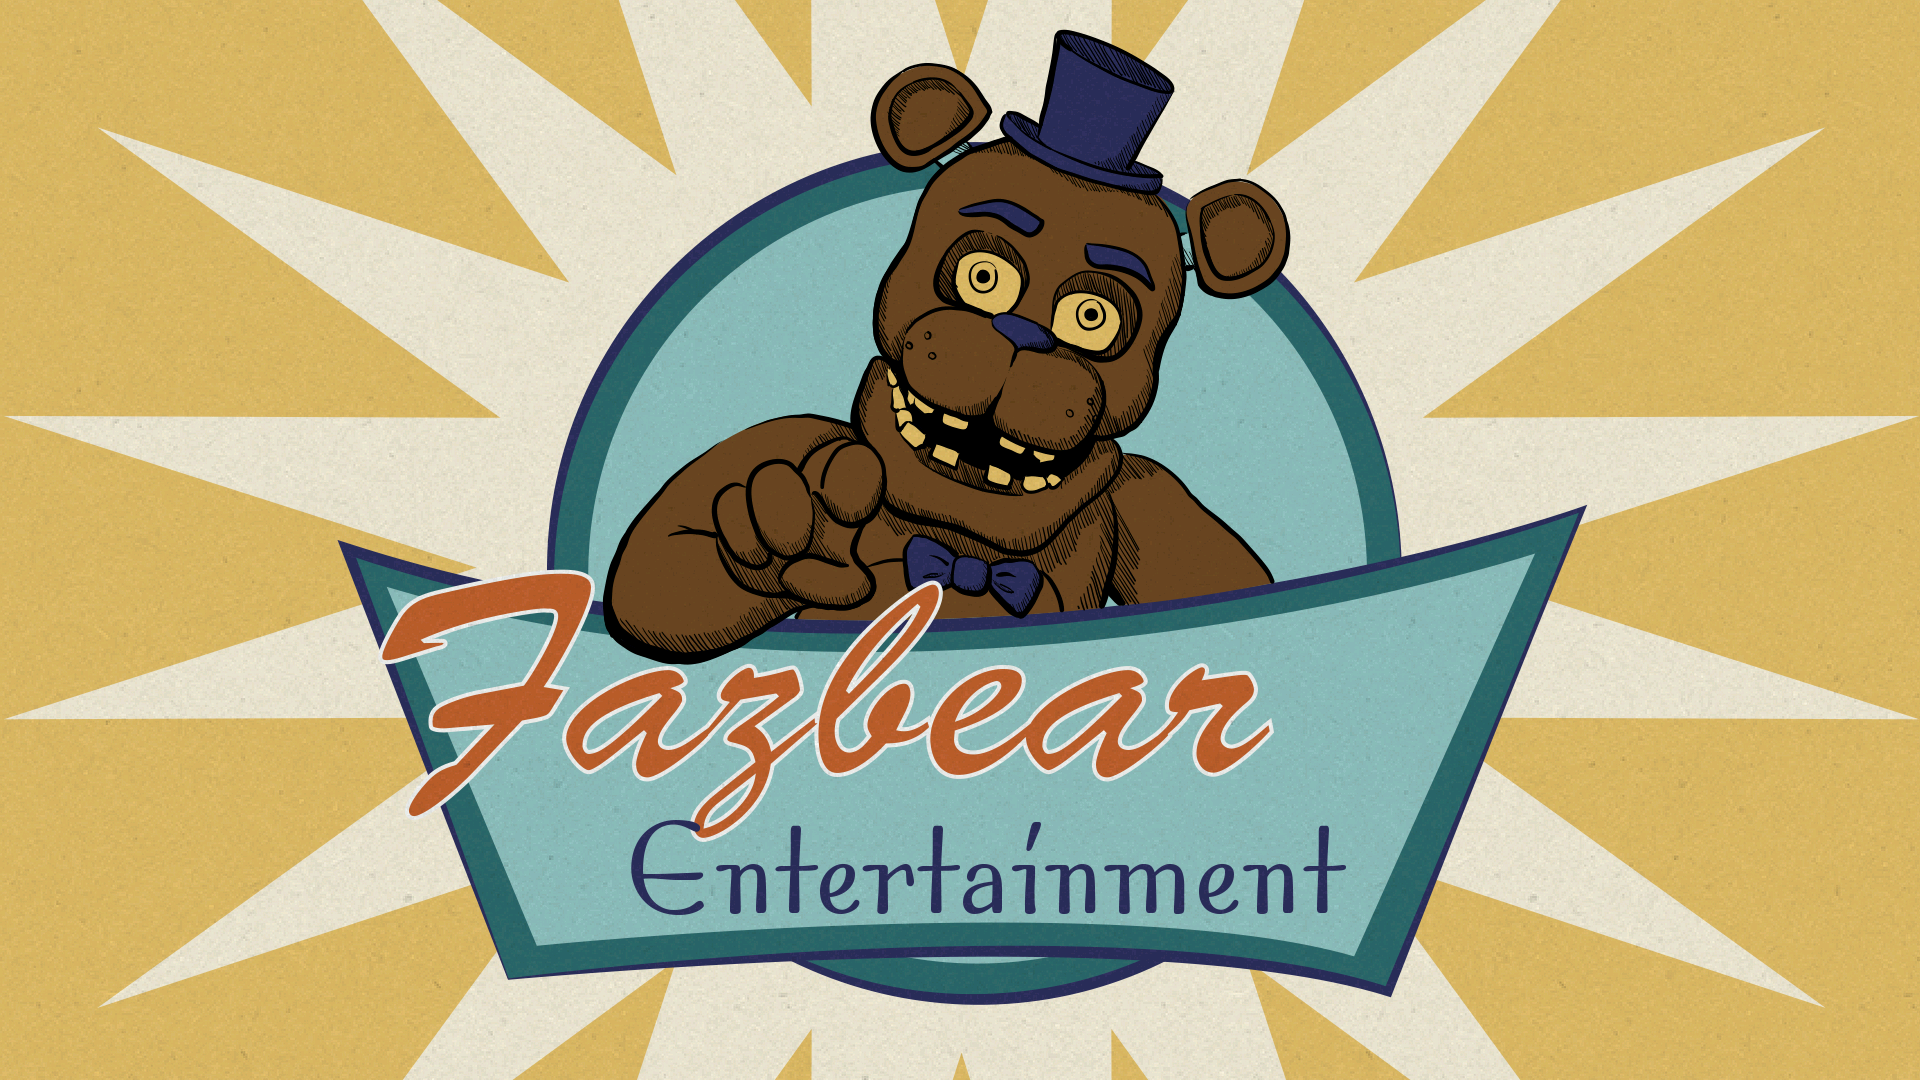 Fazbear Entertainment